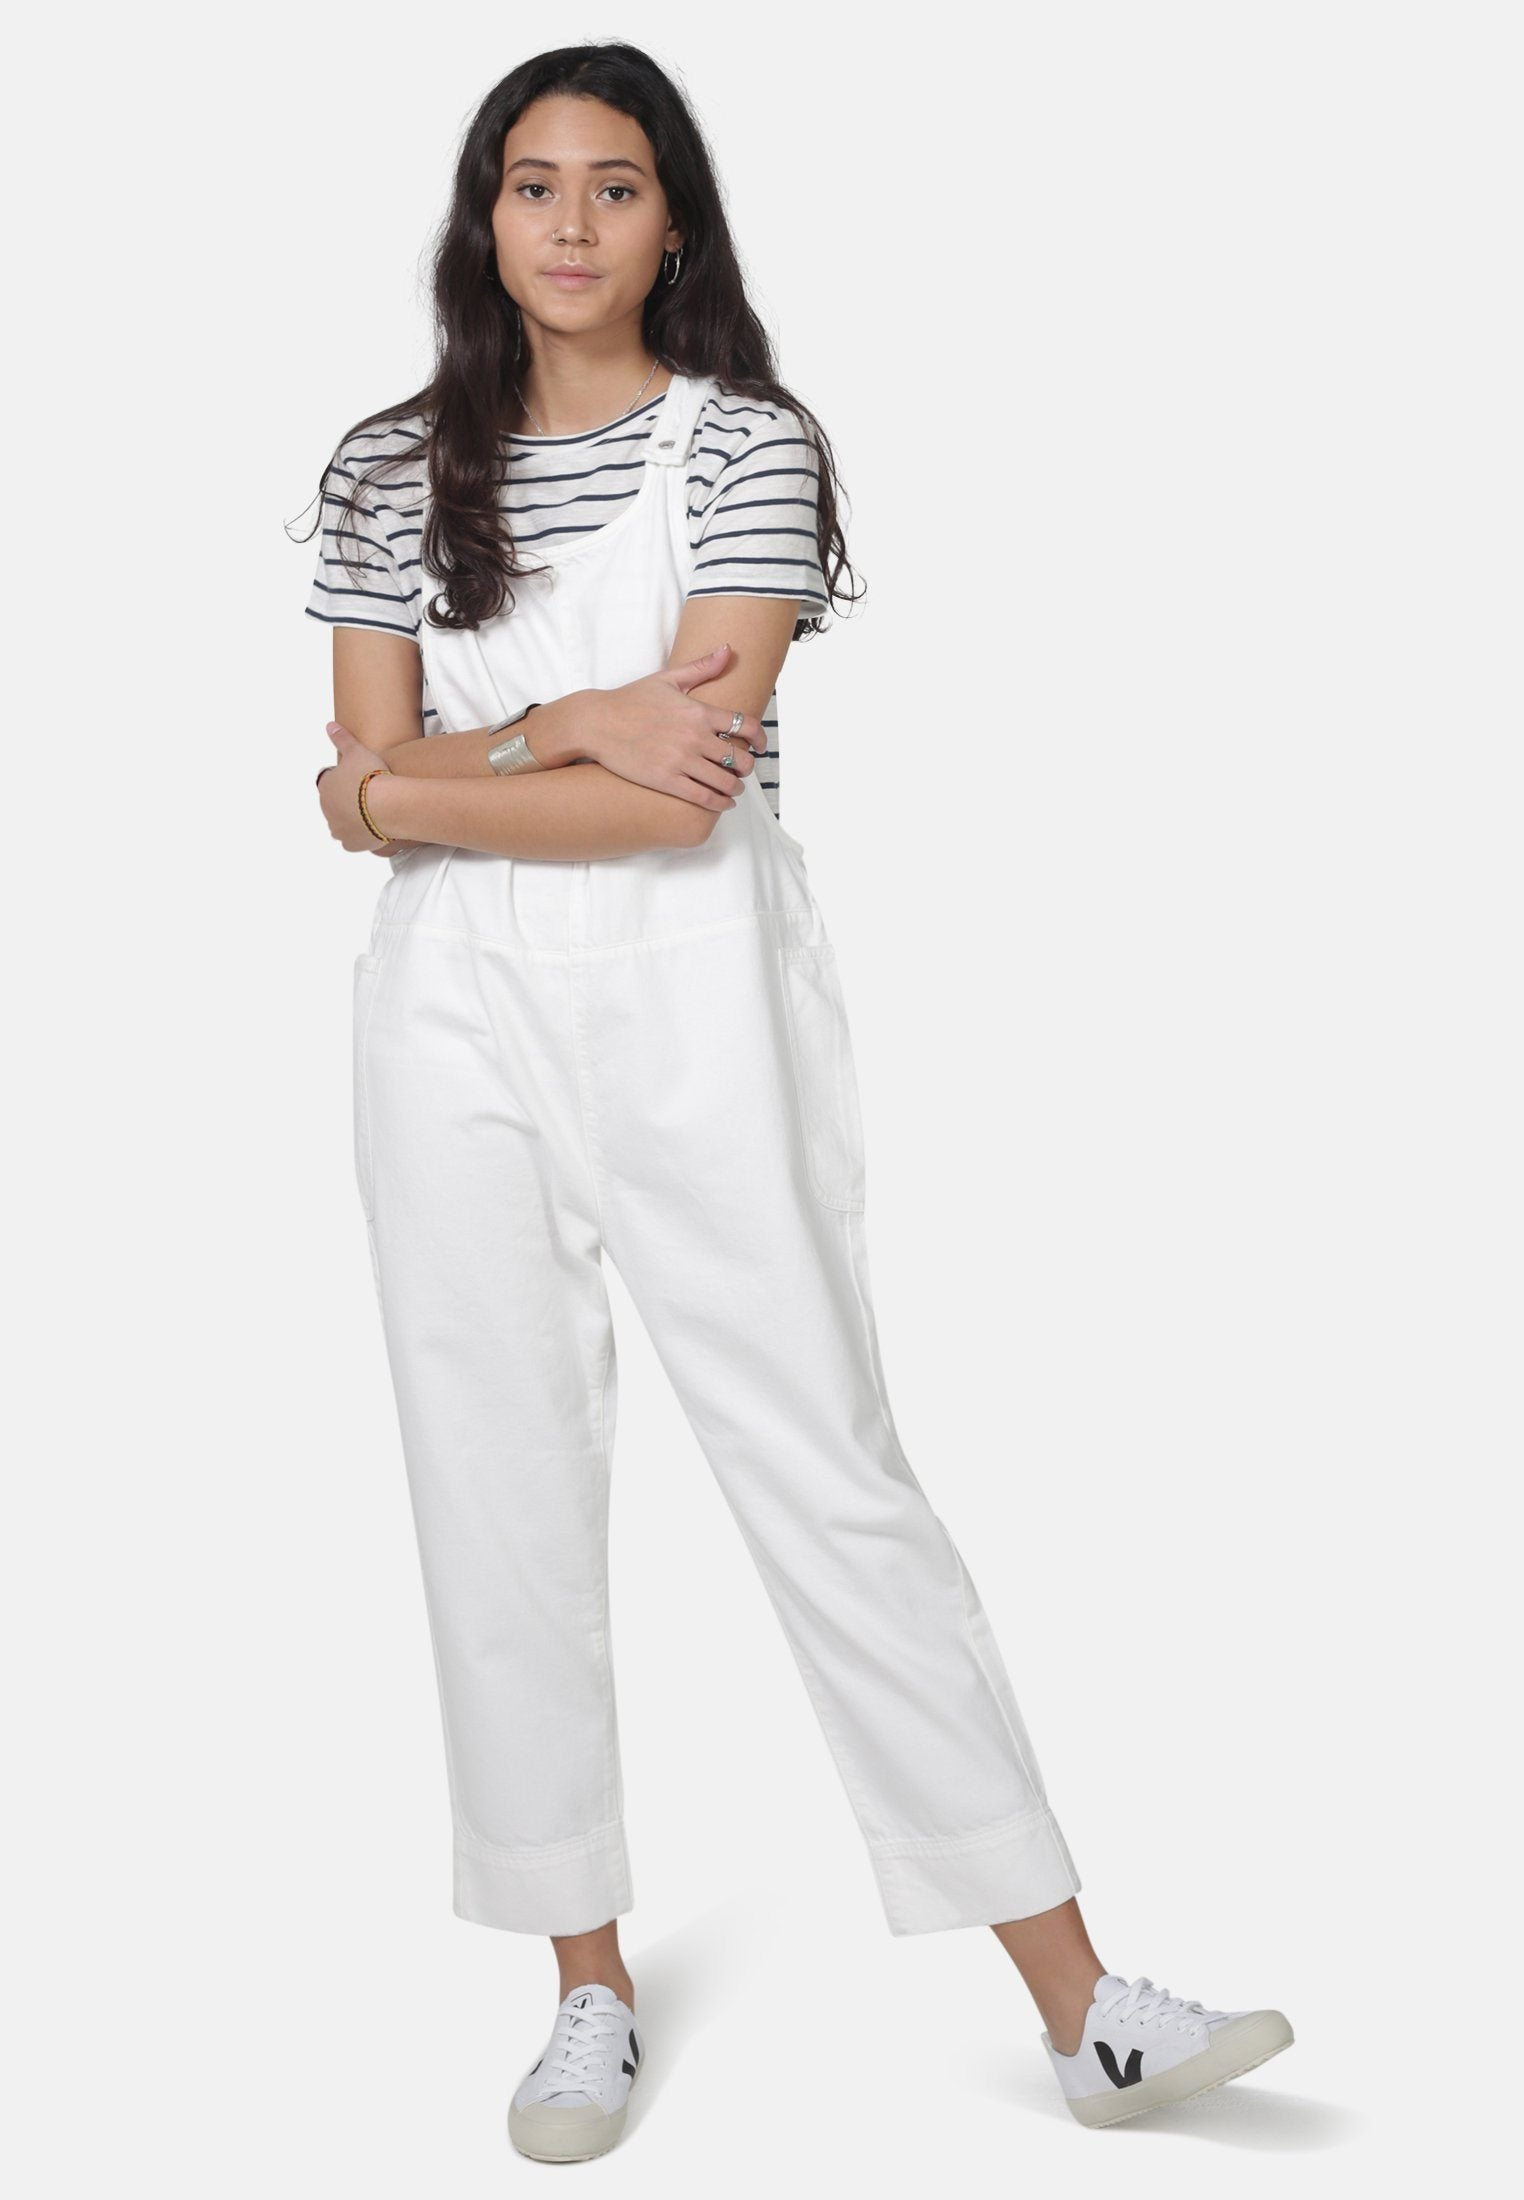 Sustainable White Denim Overalls by MONKEE Genes | Organic Cotton